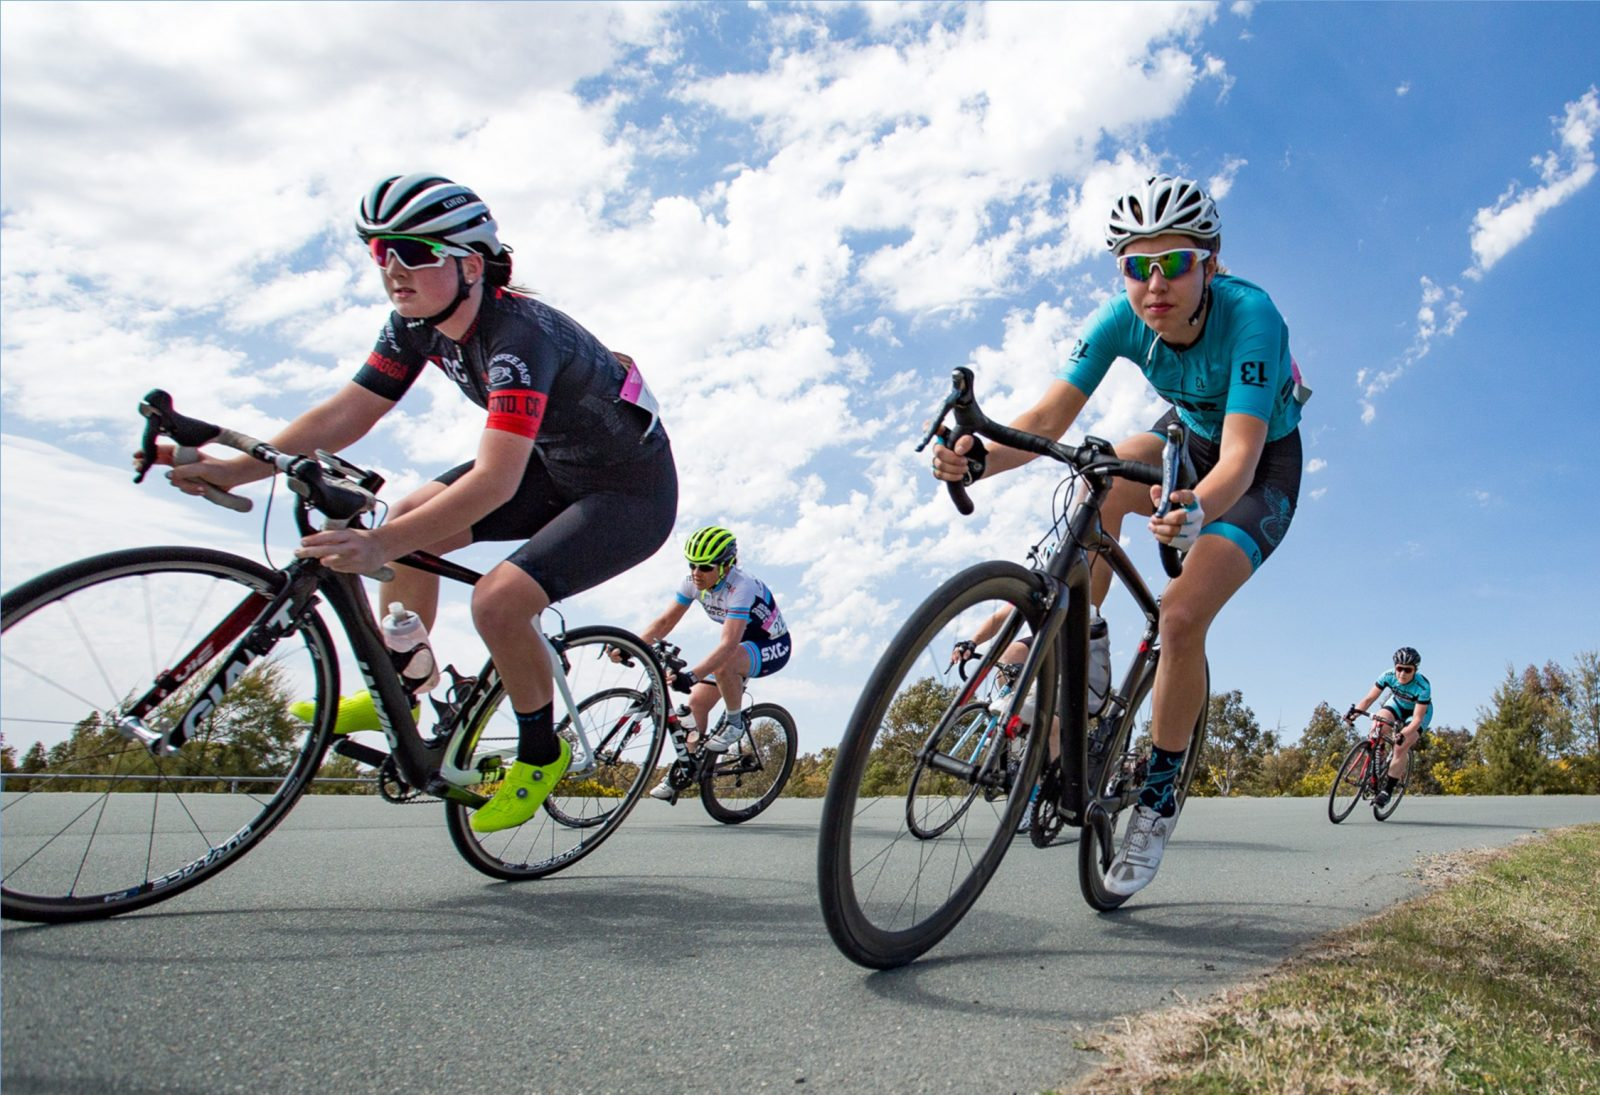 Female cyclists taking a corner on the Criterium track at Stromlo Forest Park